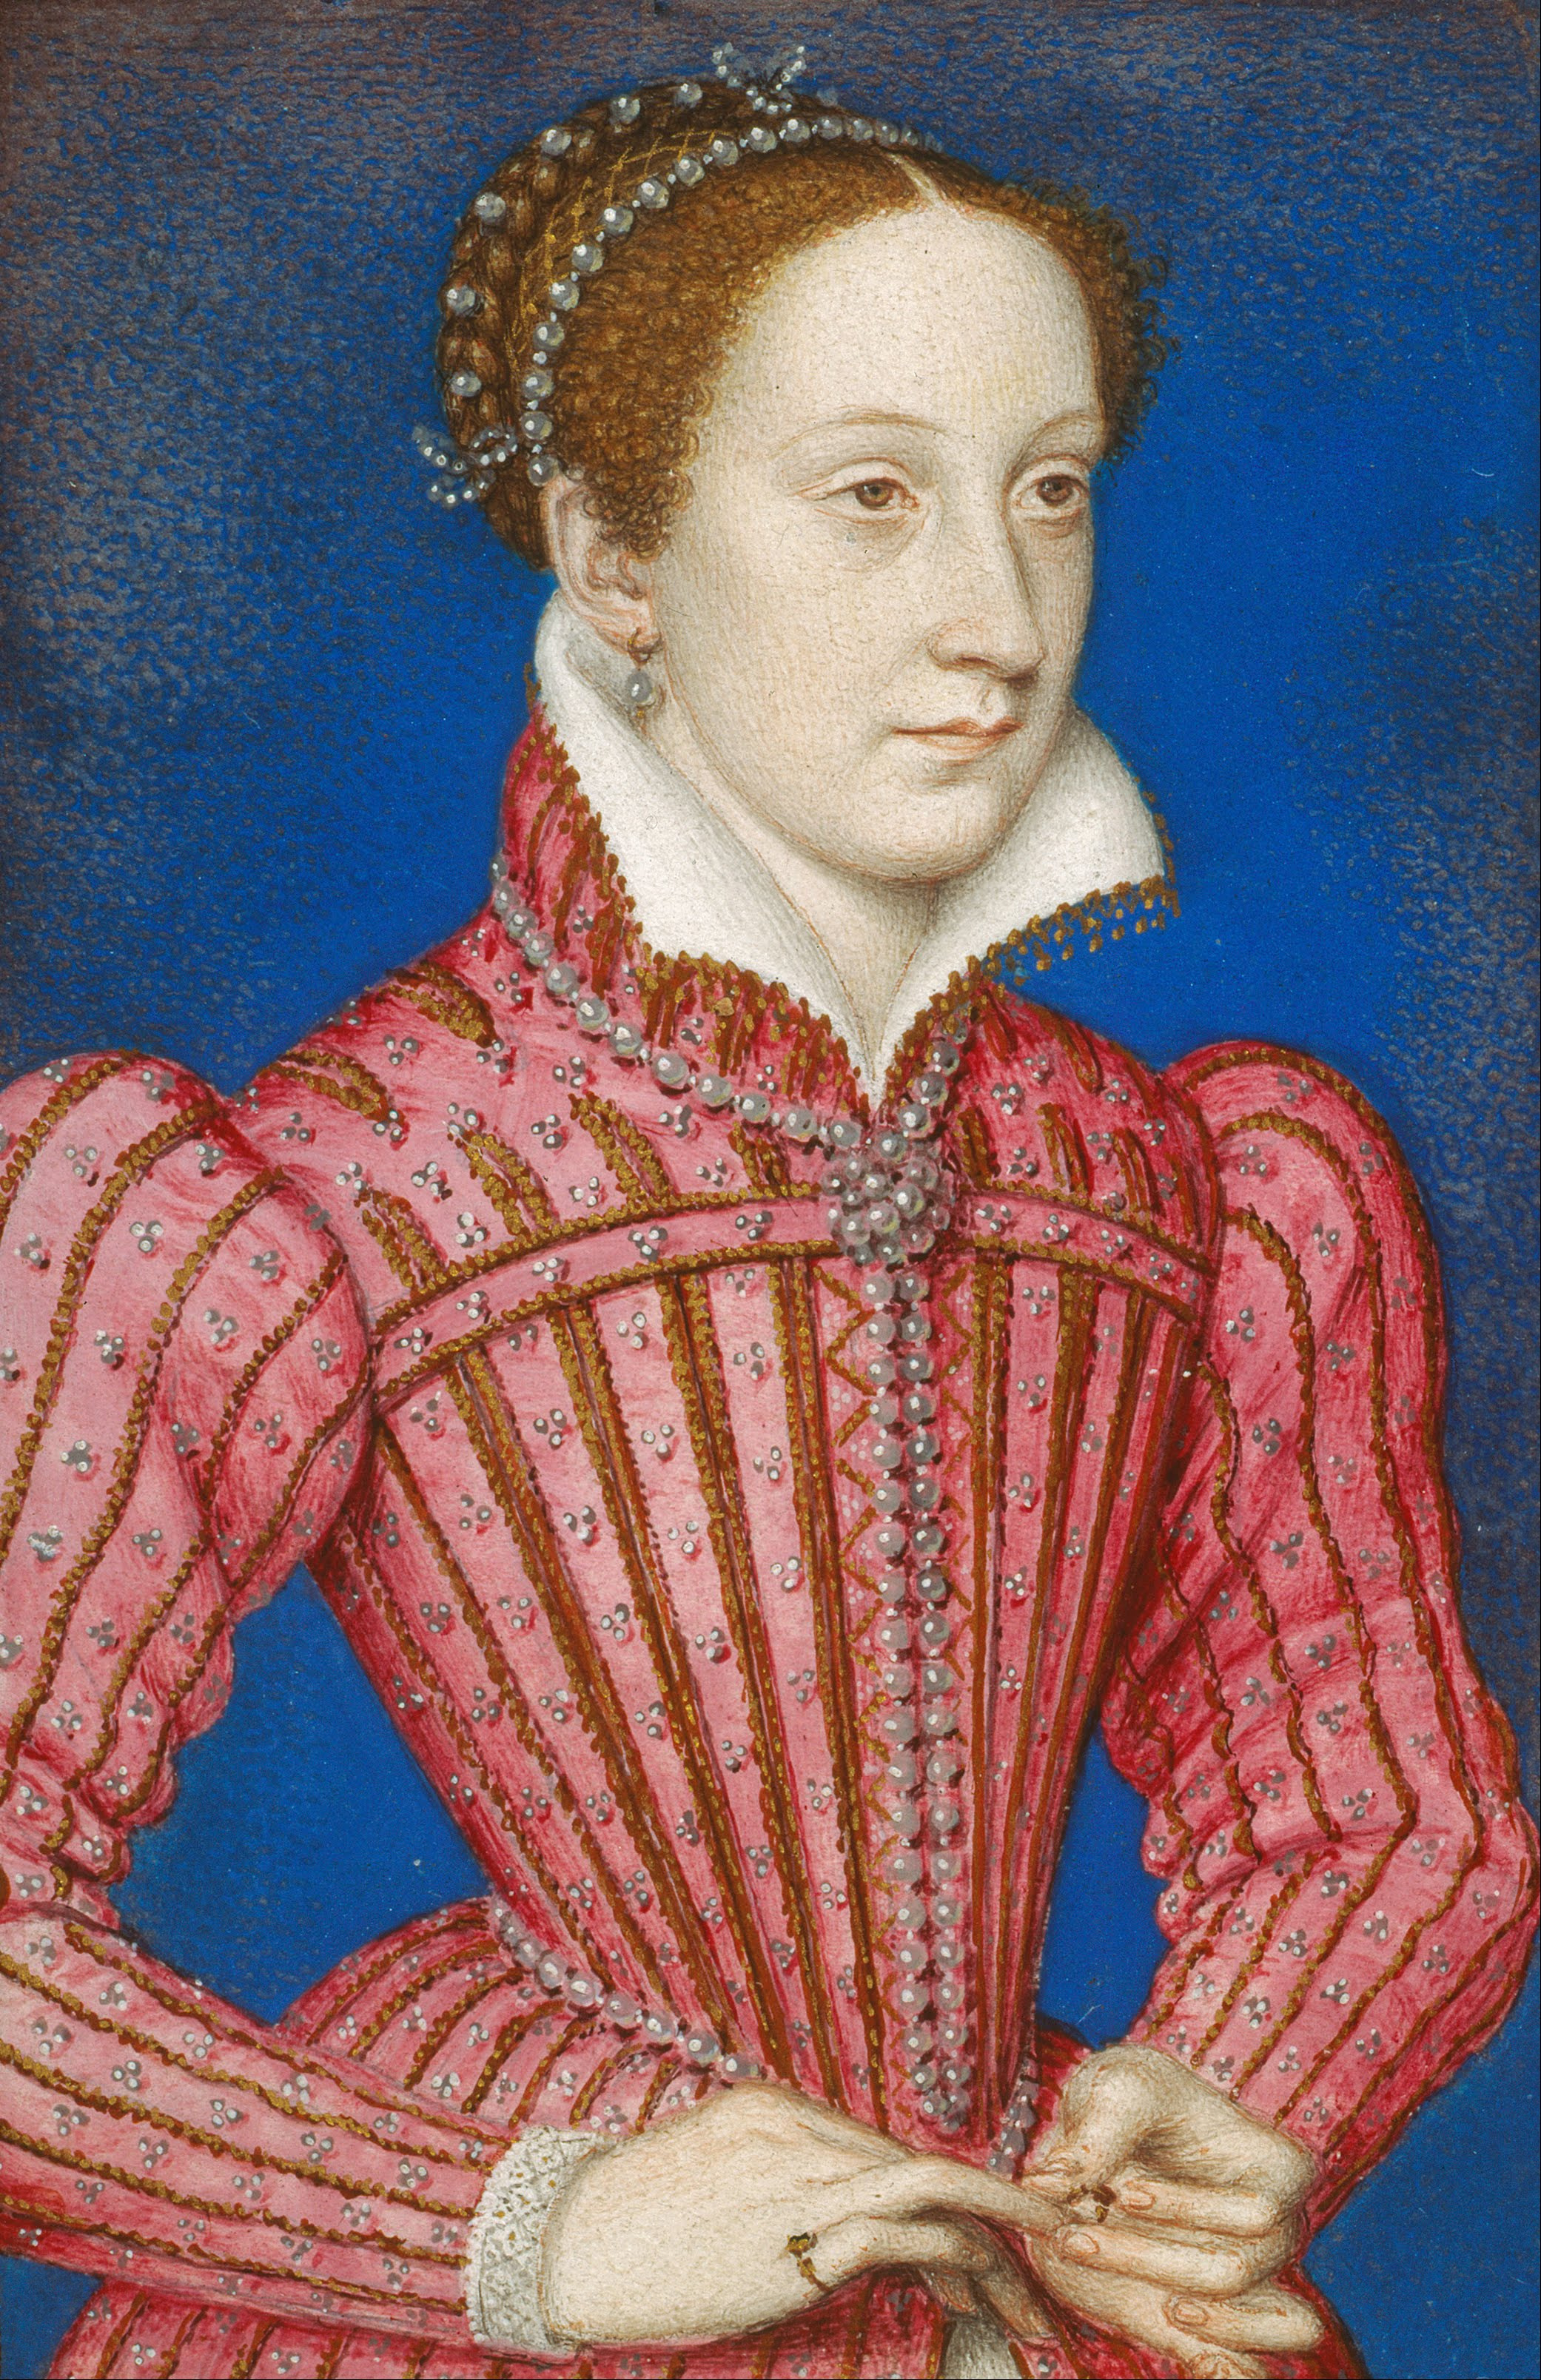 mary queen of scots - photo #12